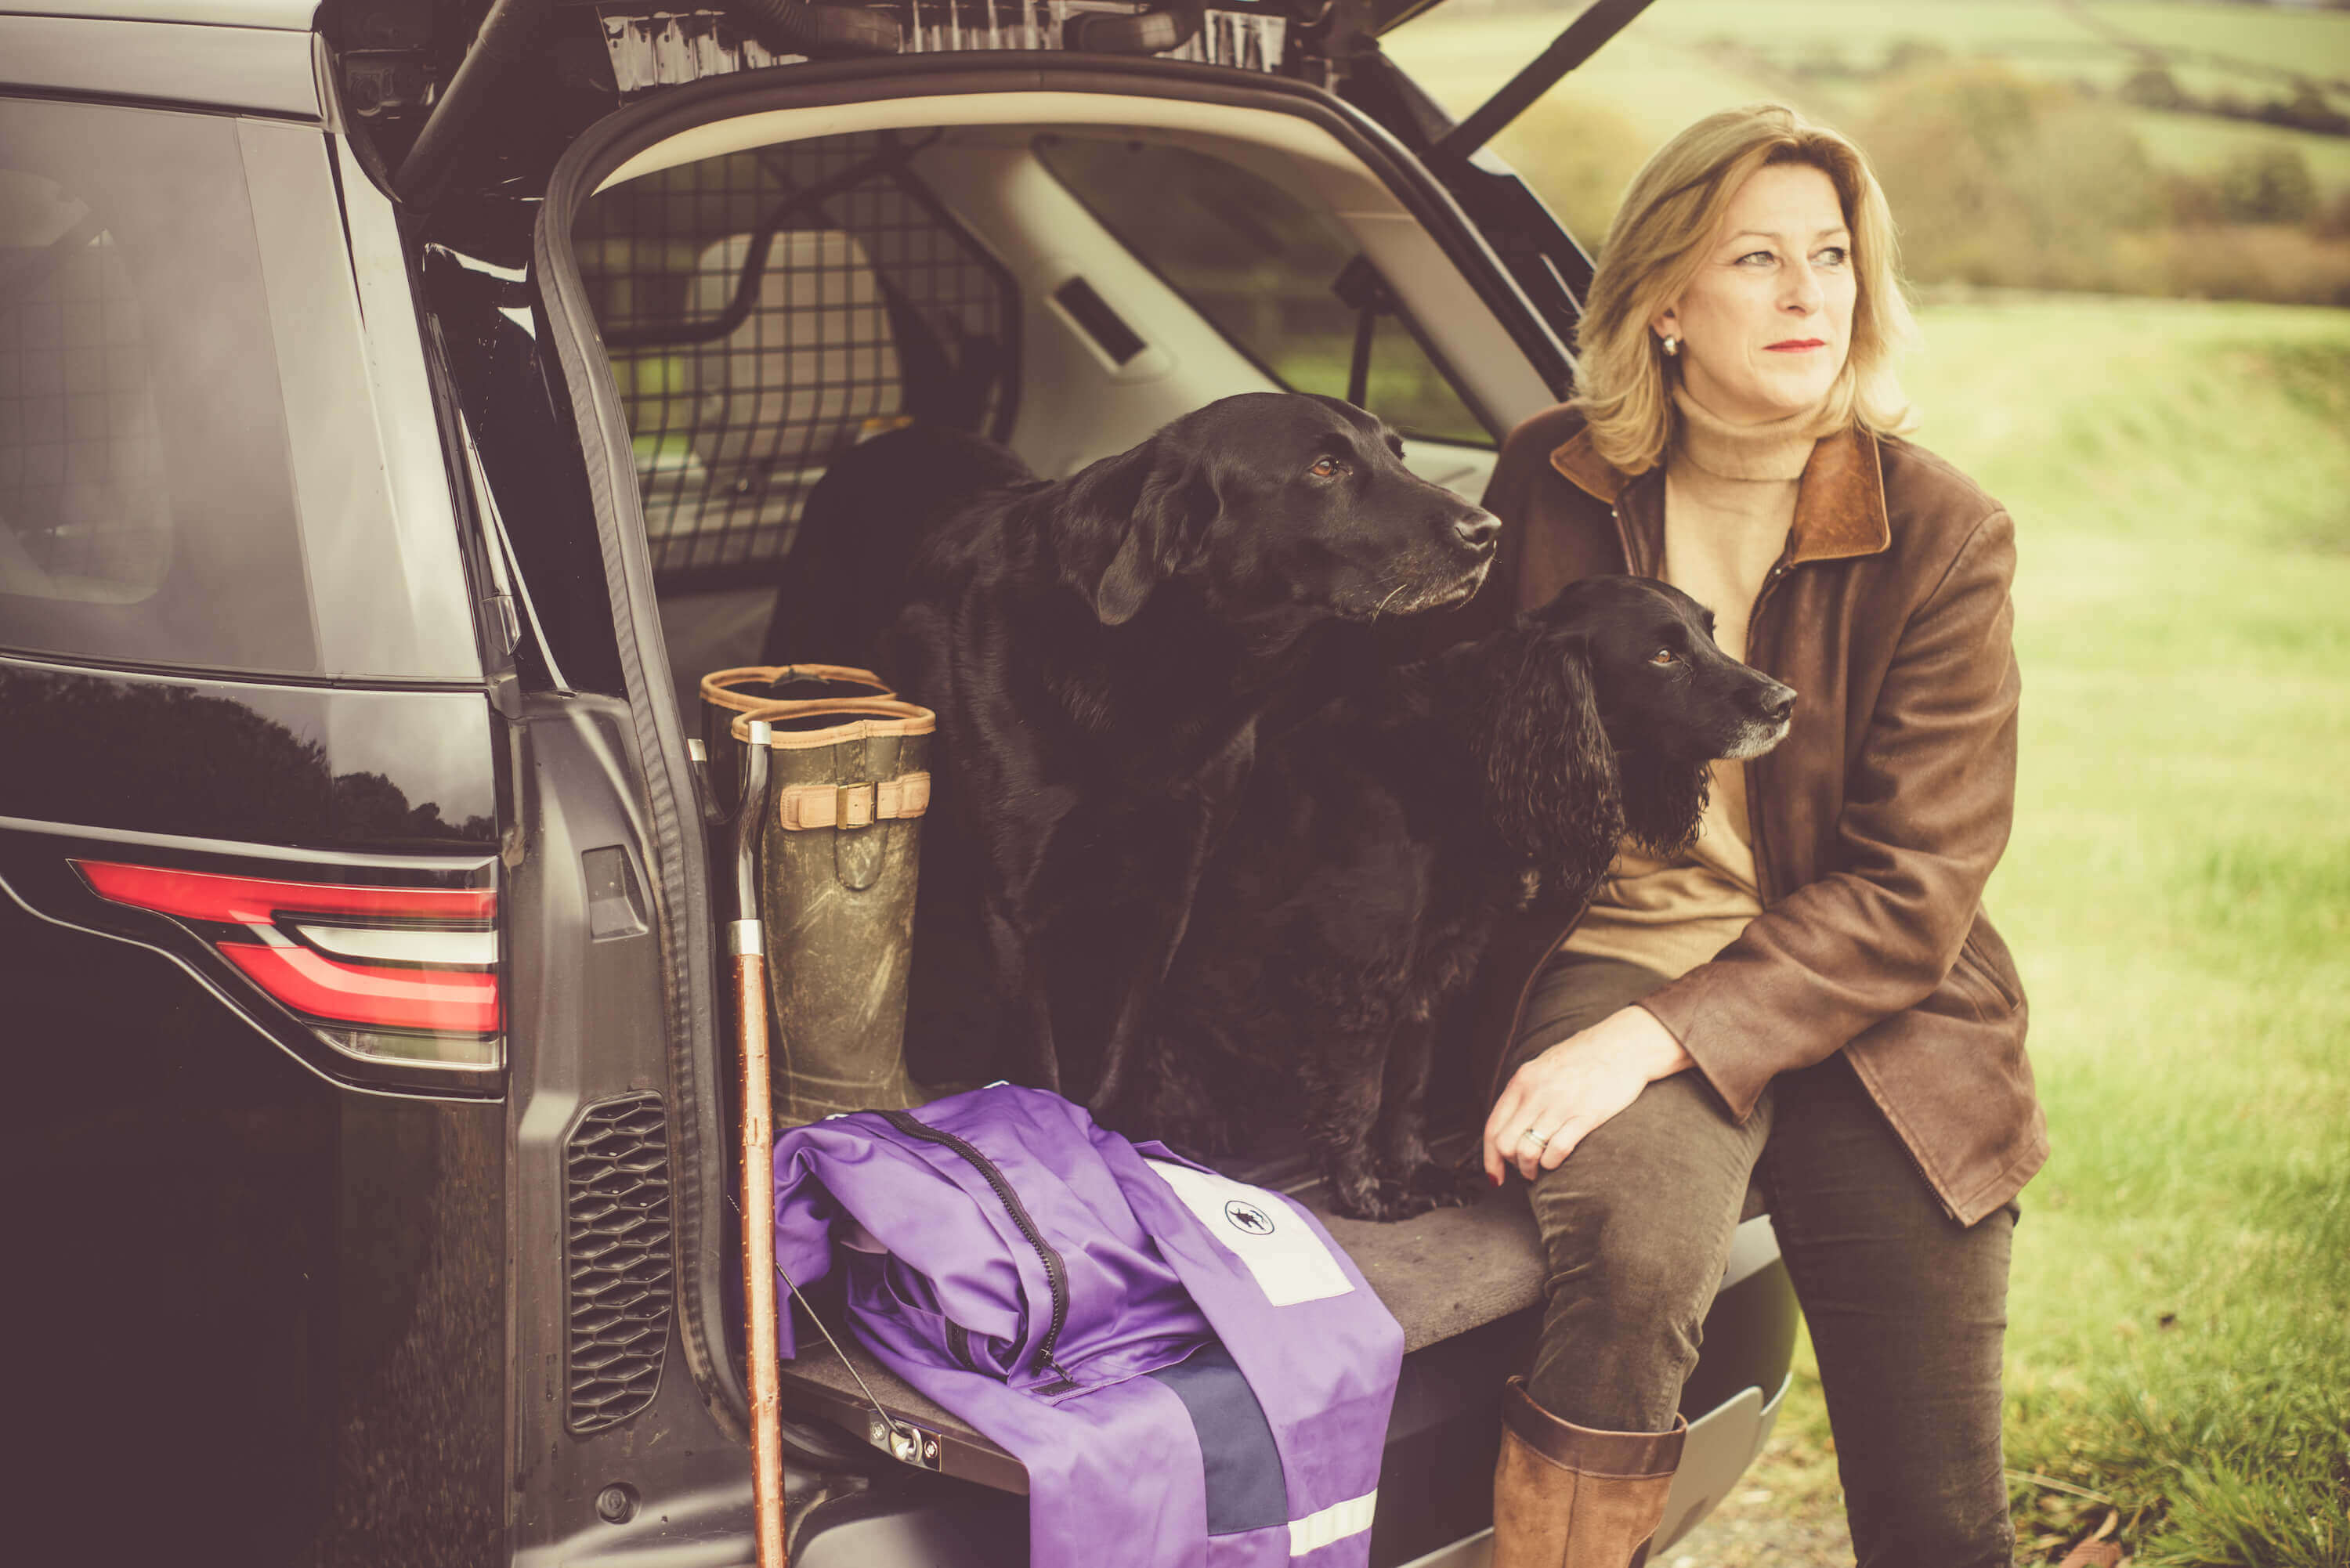 woman at the back of the car holding two black dogs